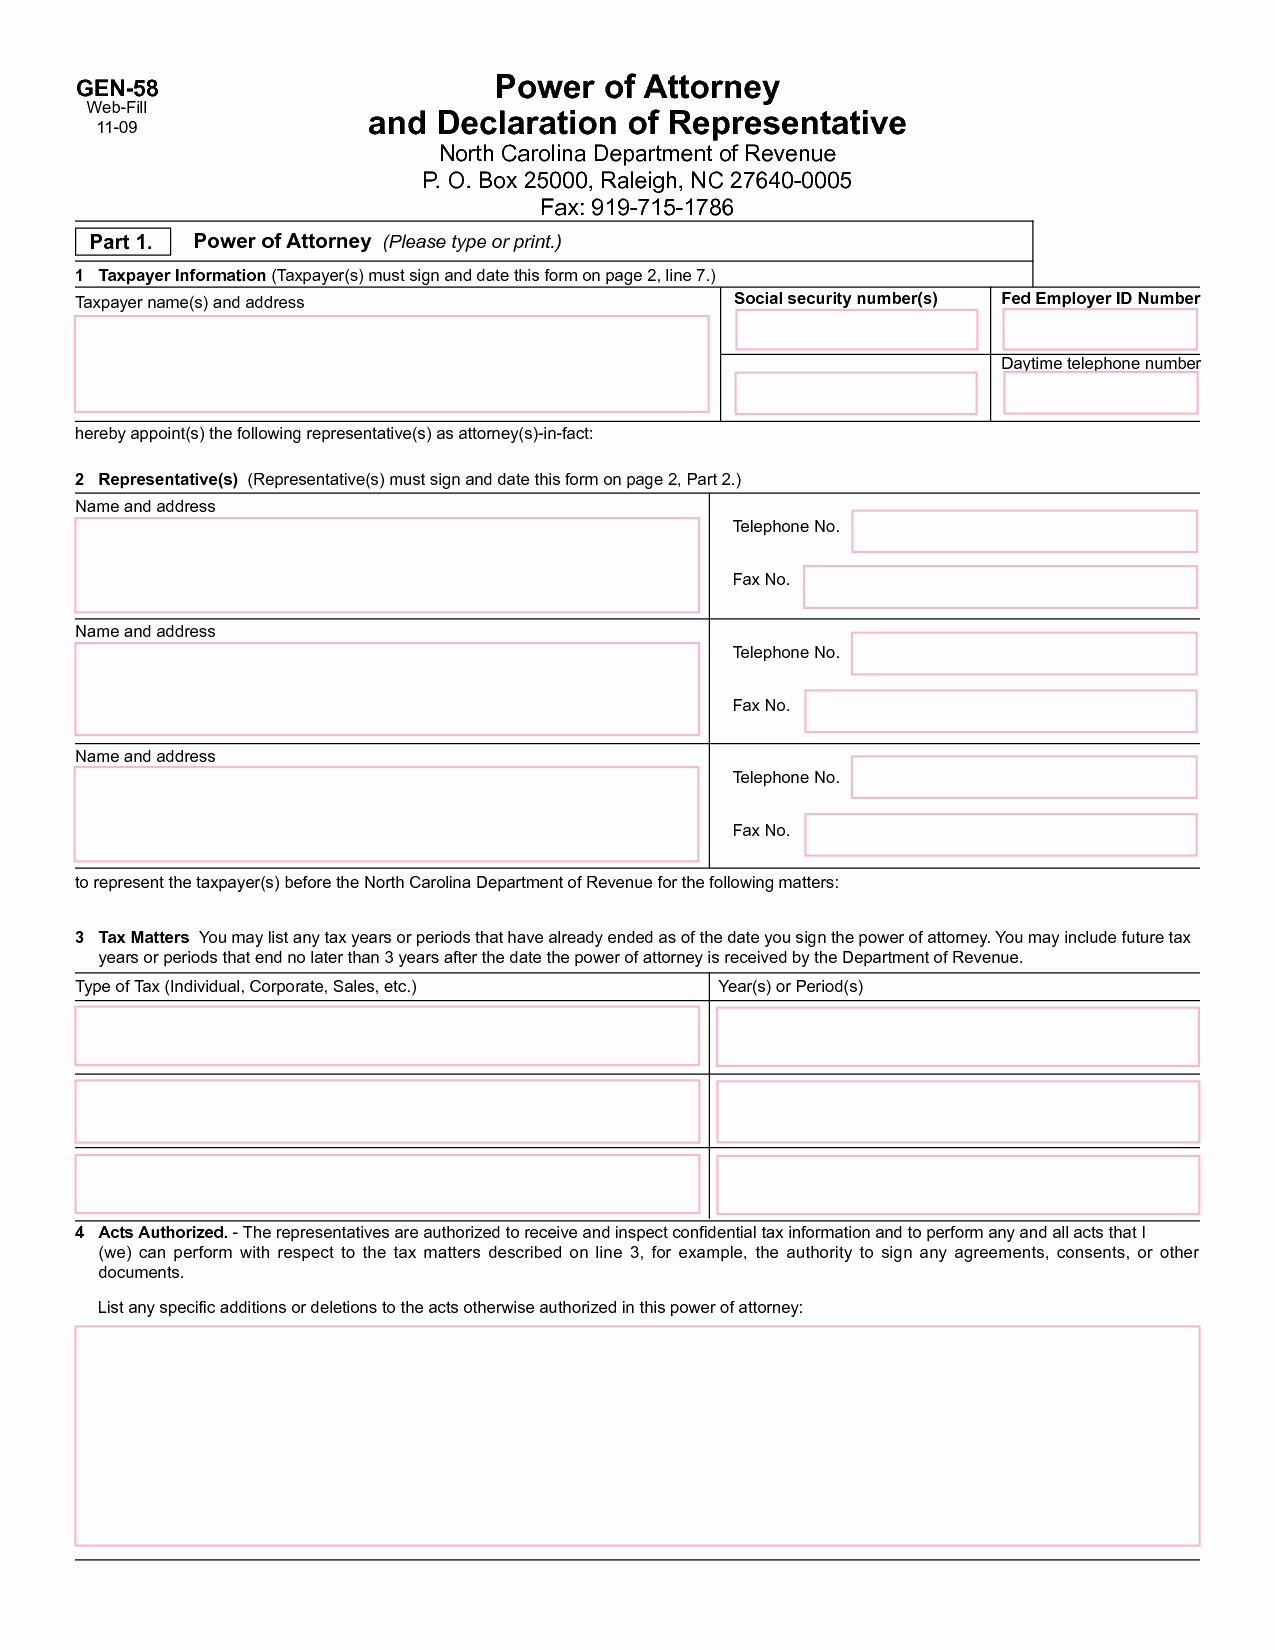 Georgia Health Care Power Of Attorney Form Inspirational Form Durable Power Attorney Georgia Forms General Form Sample